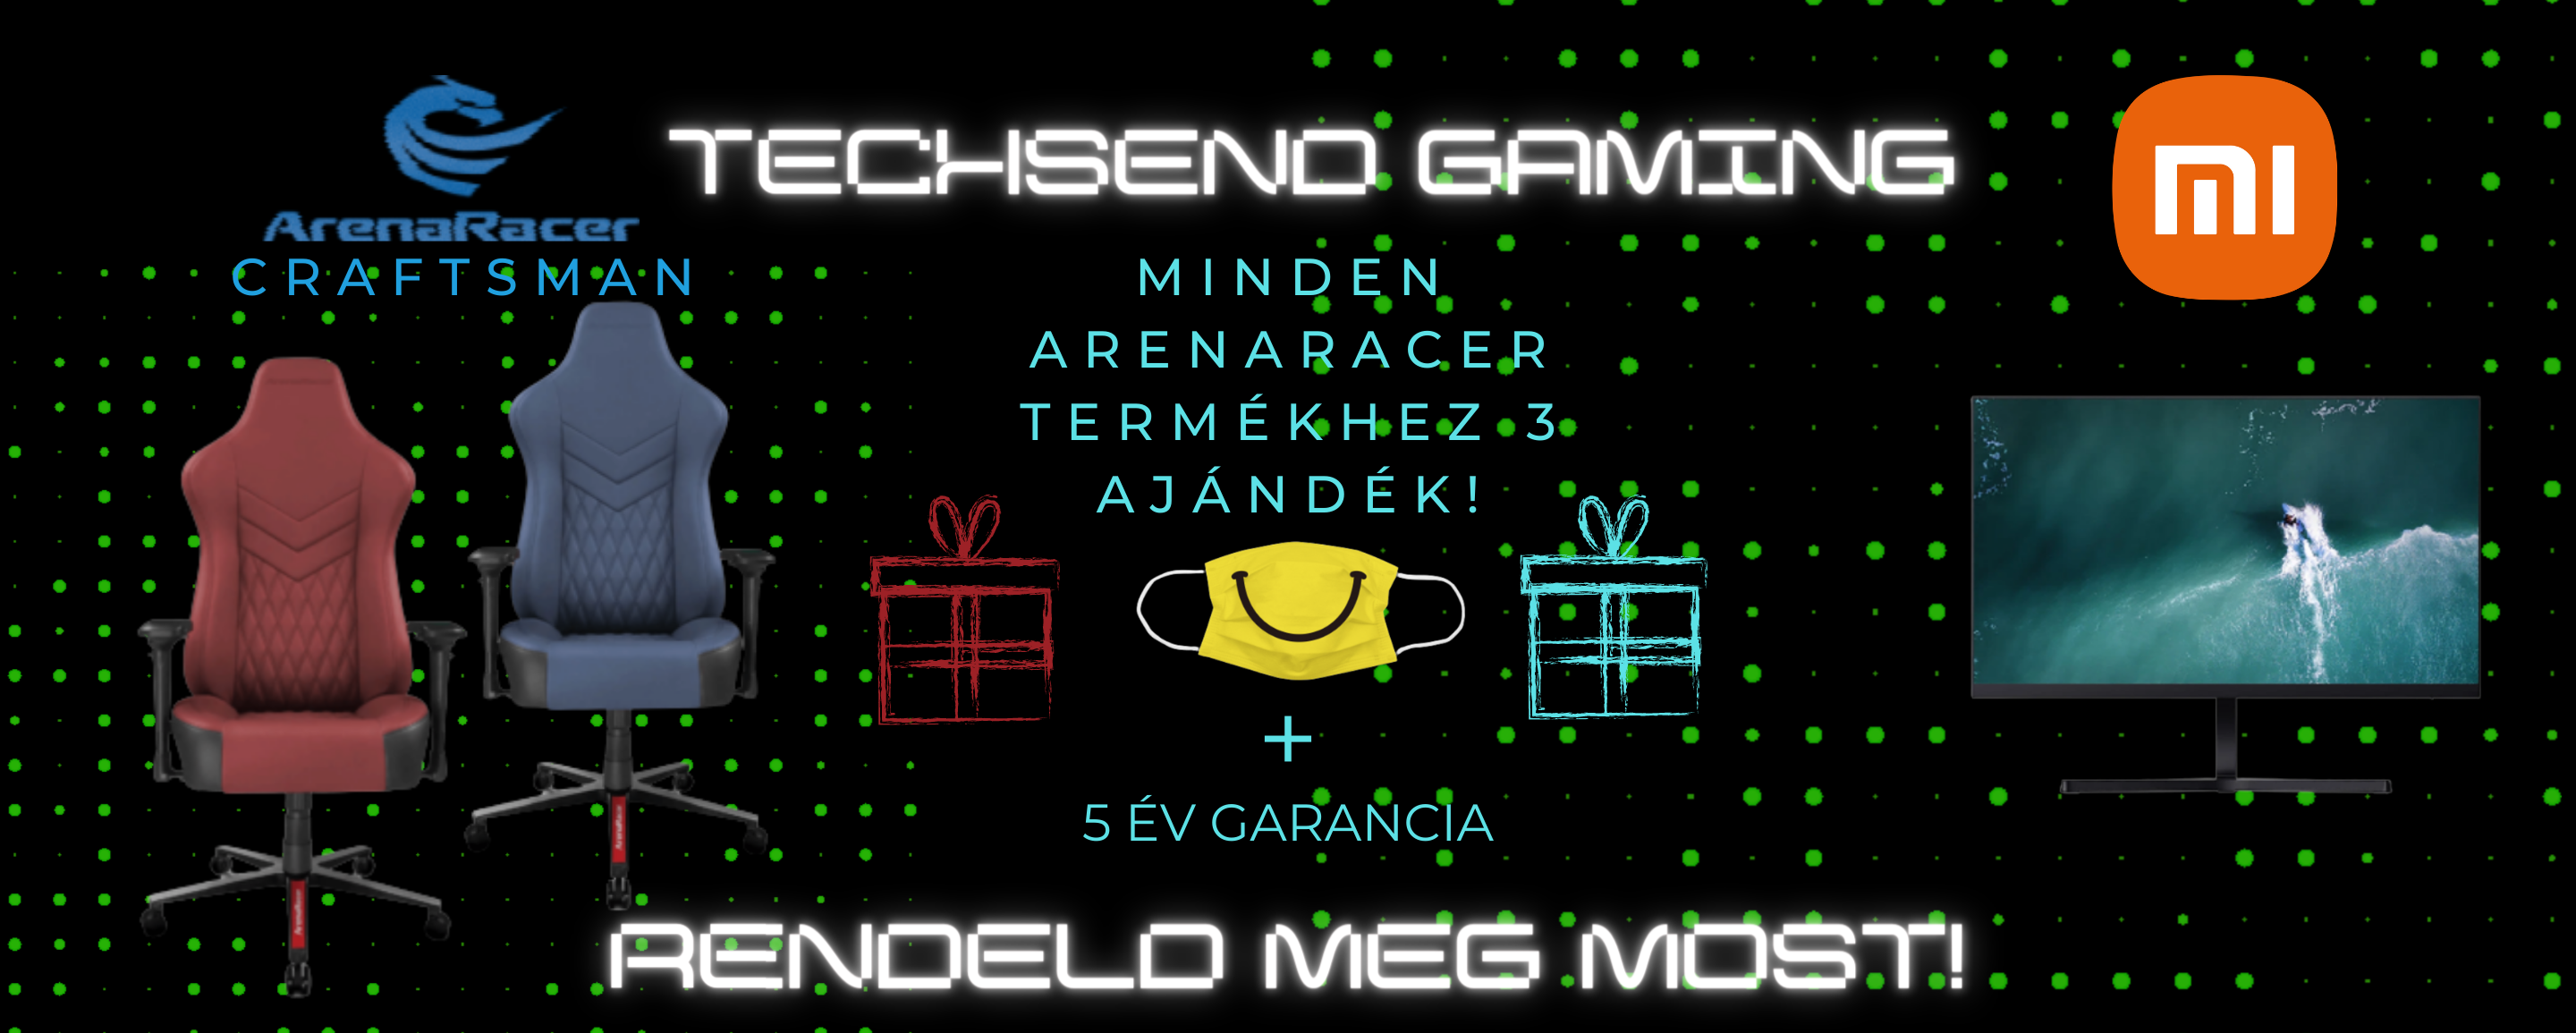 Techsend Gaming